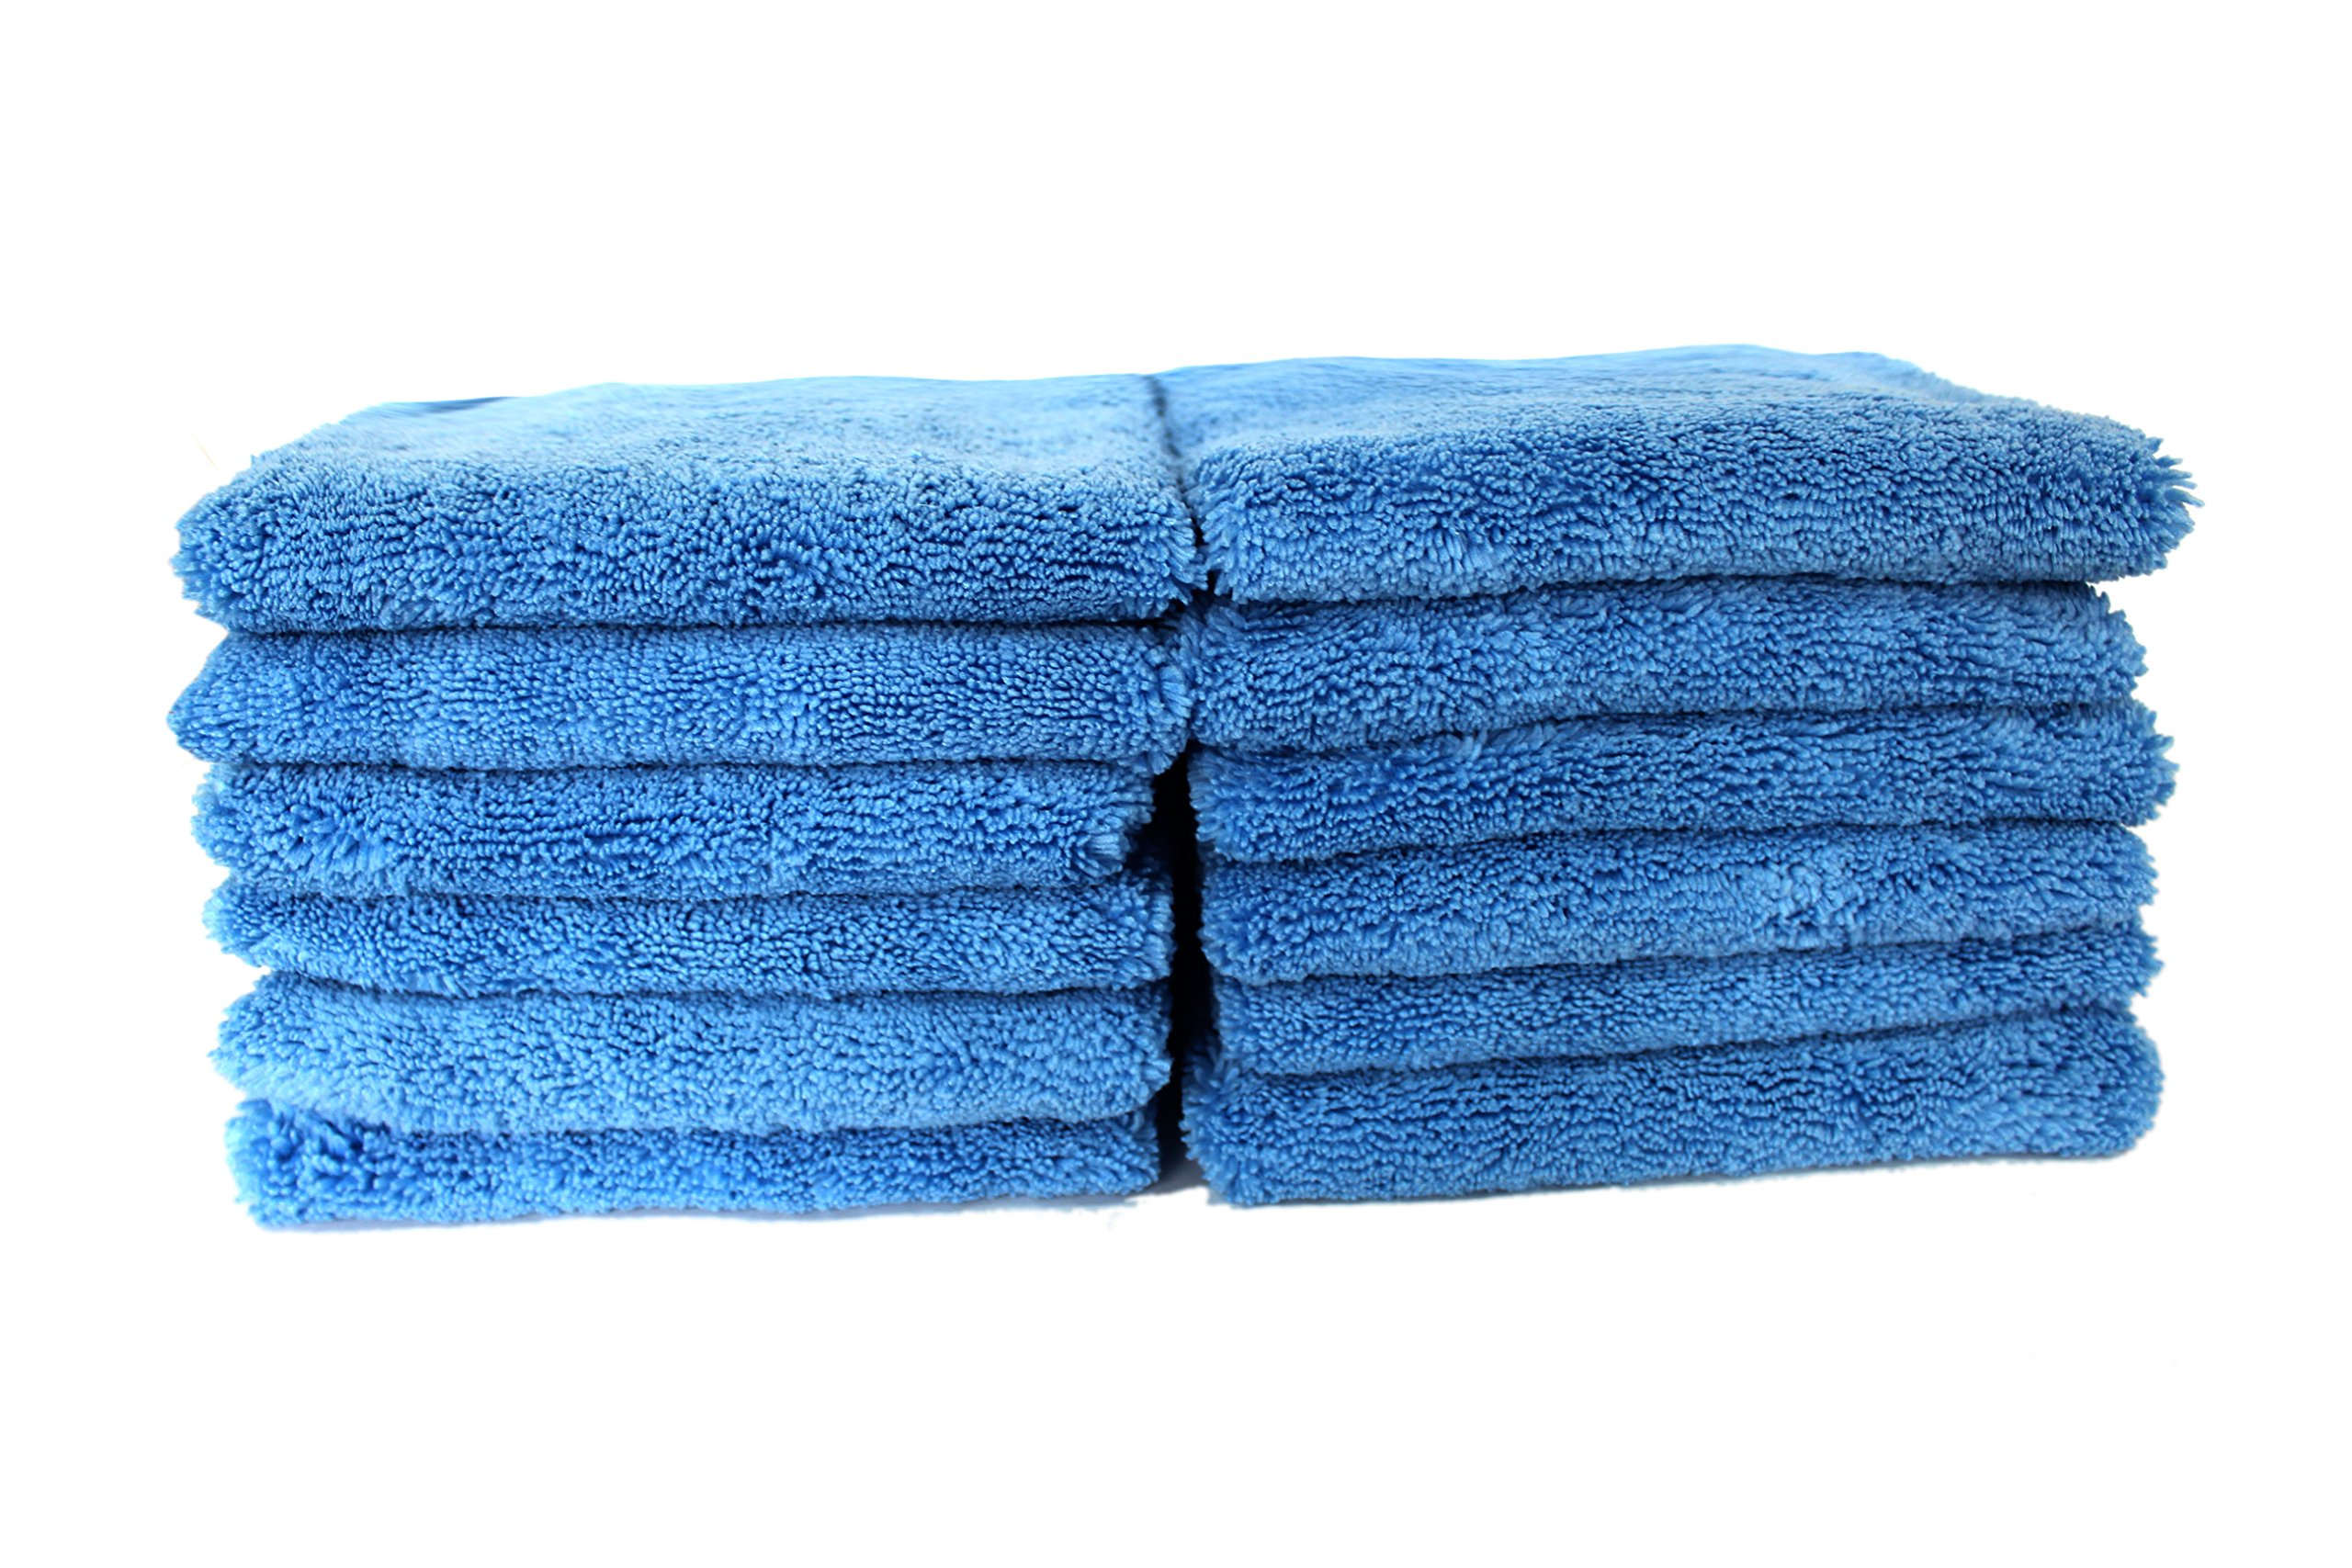 Maxshine 380GSM Zero Crazy Edgeless Microfiber Towel for Car Detailing, Blue (40x60cm, Pack of 12pcs)